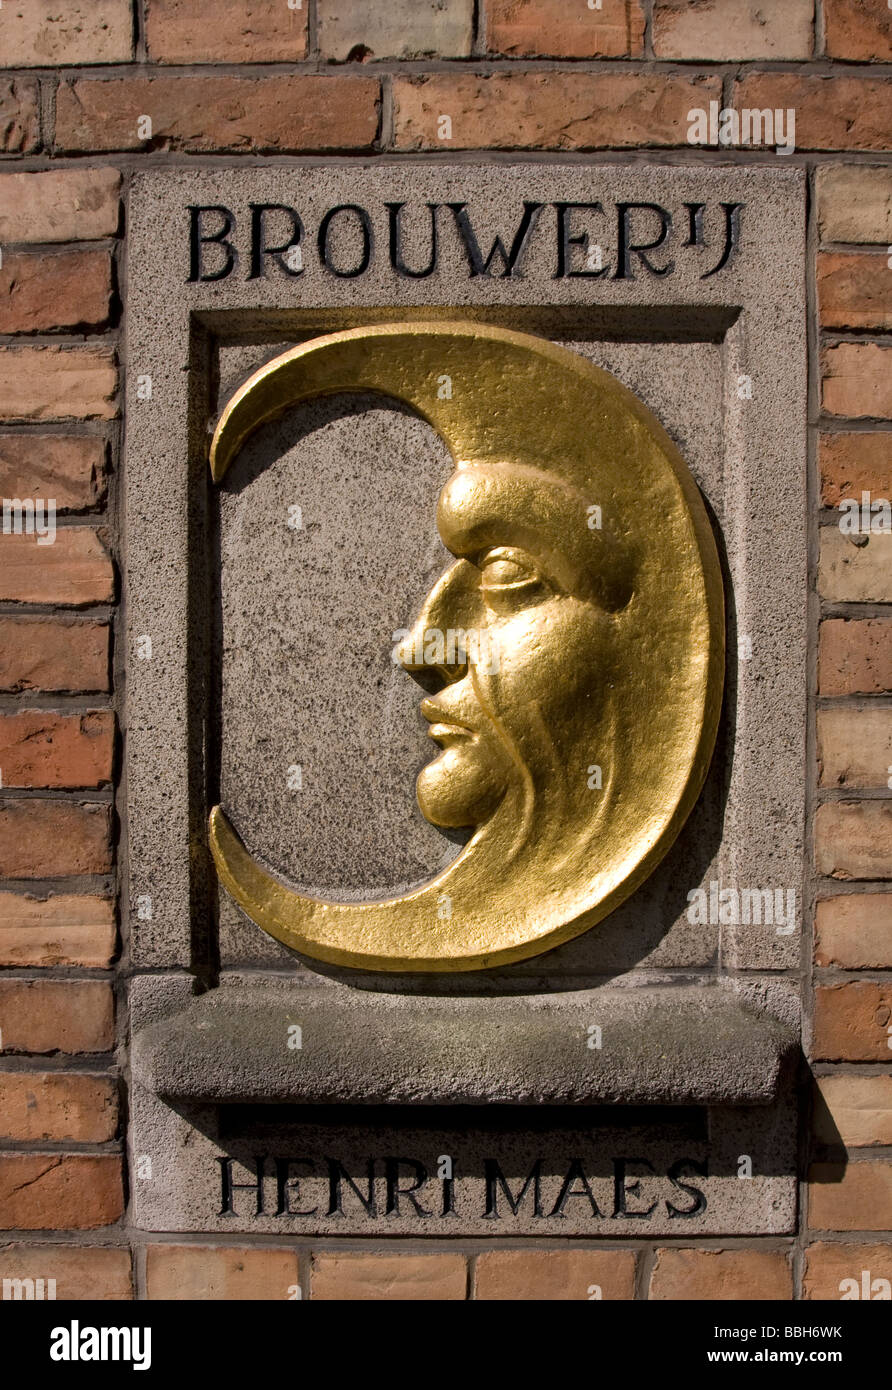 Brewery De Halve Maan, also knows as Breweryj Henri Maes, Brughes (Brugge), Belgium. Stock Photo